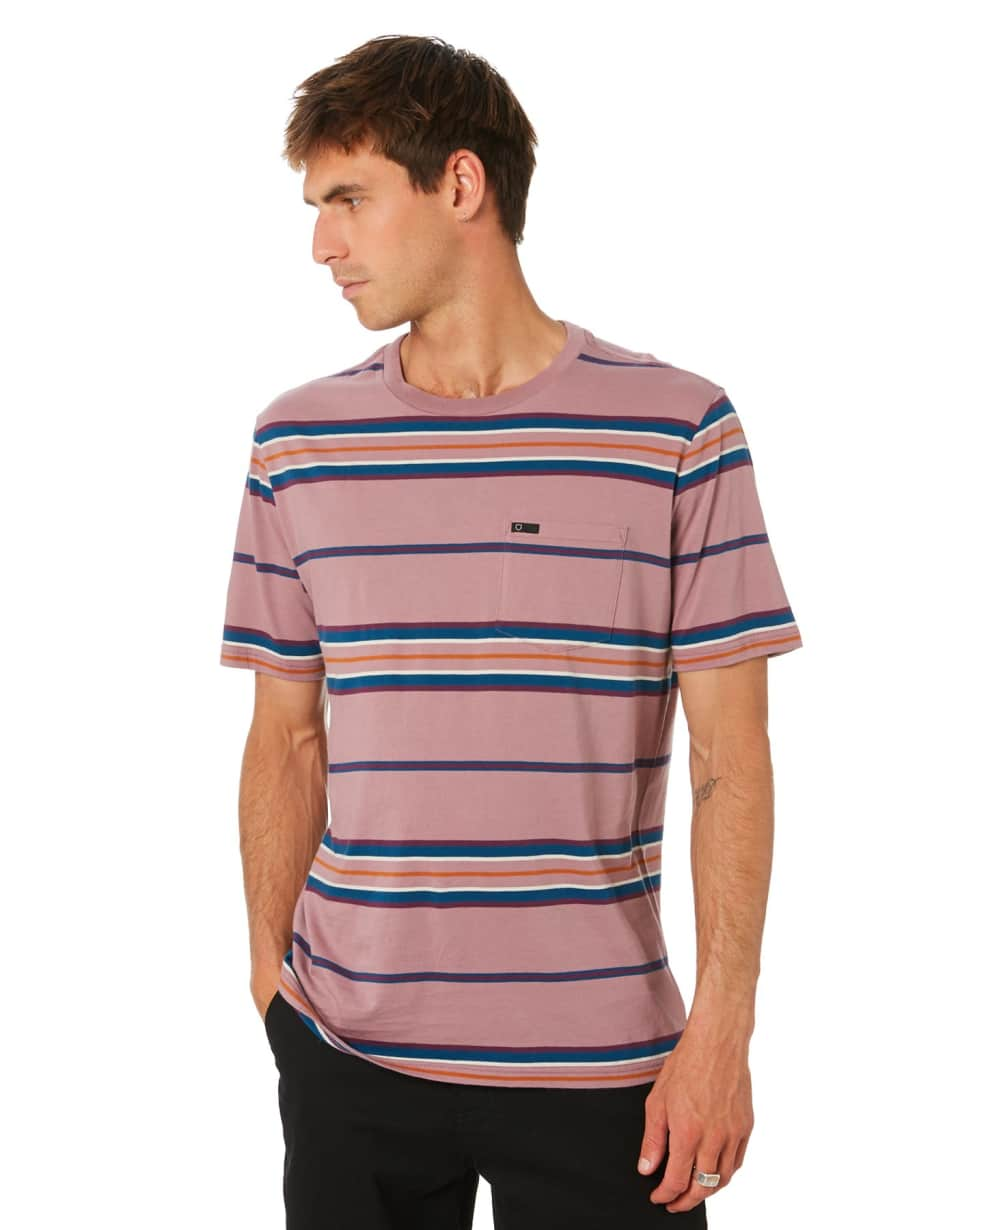 BRIXTON HILT S/S POCKET KNIT - WASHED CONCORD | T-Shirt by Brixton 2